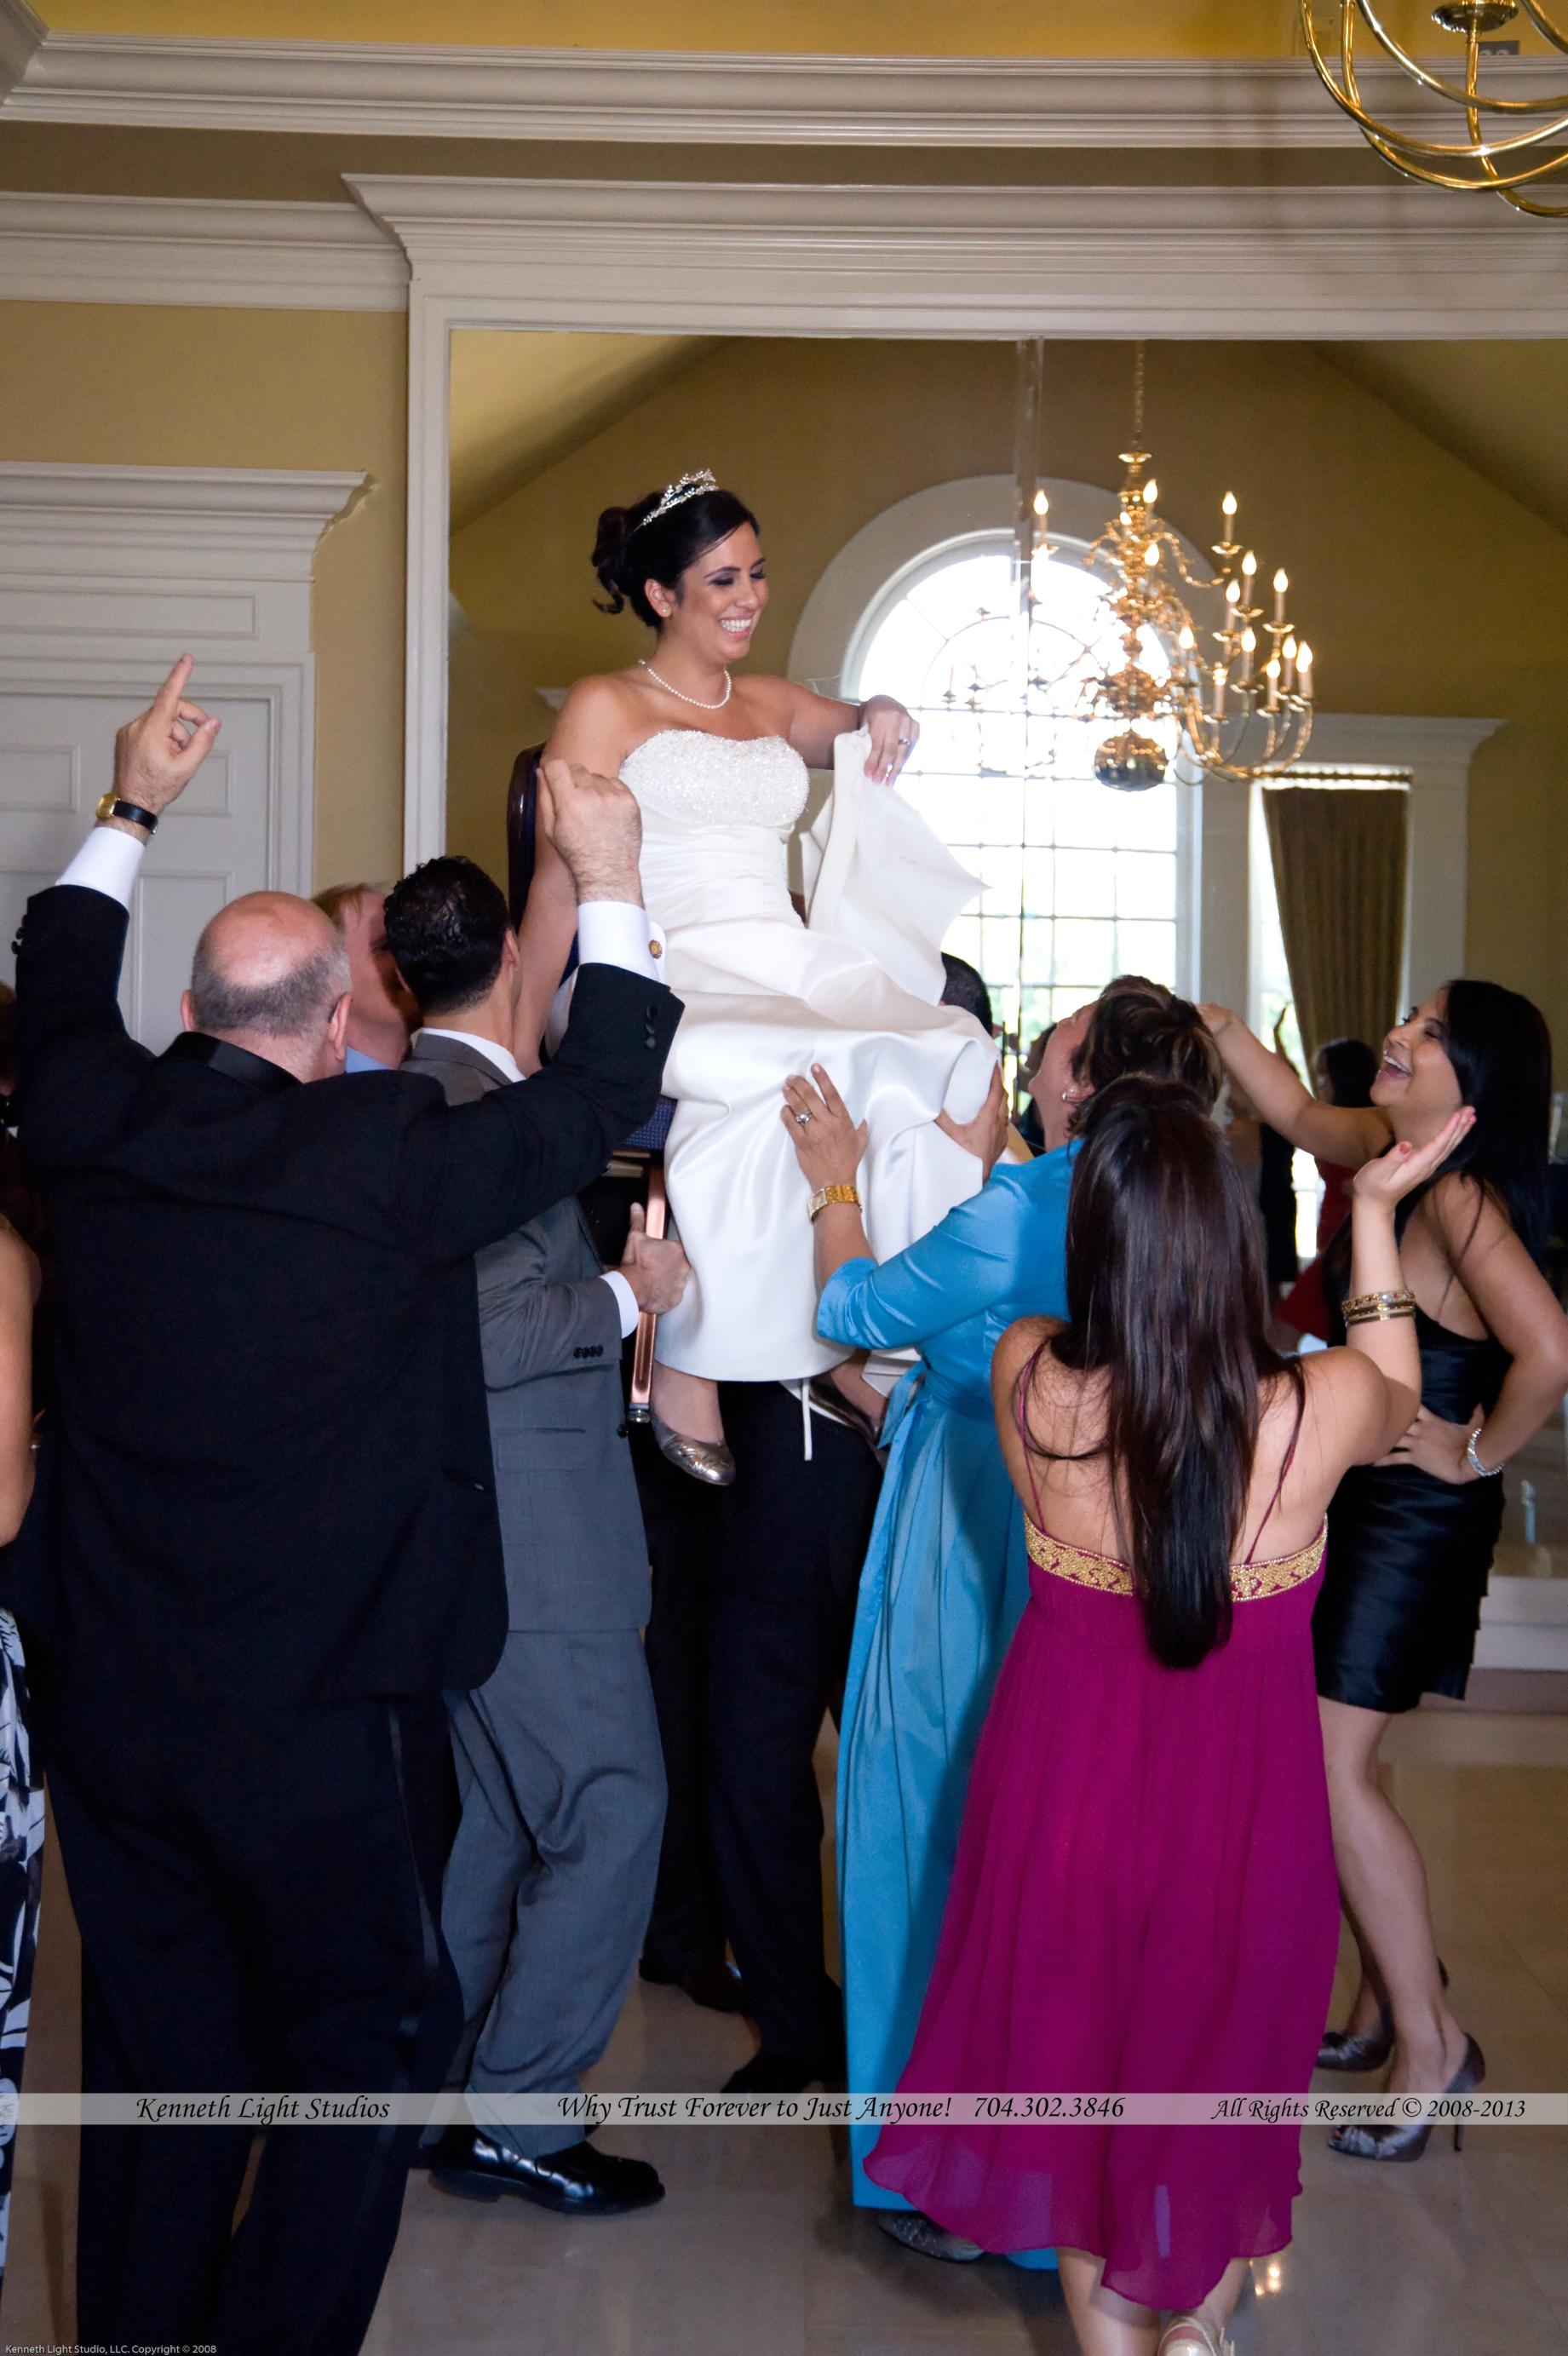 A Bride on the chair carried by her party guests on her wedding day at the providence country club in charlotte by Kenneth Light Studios